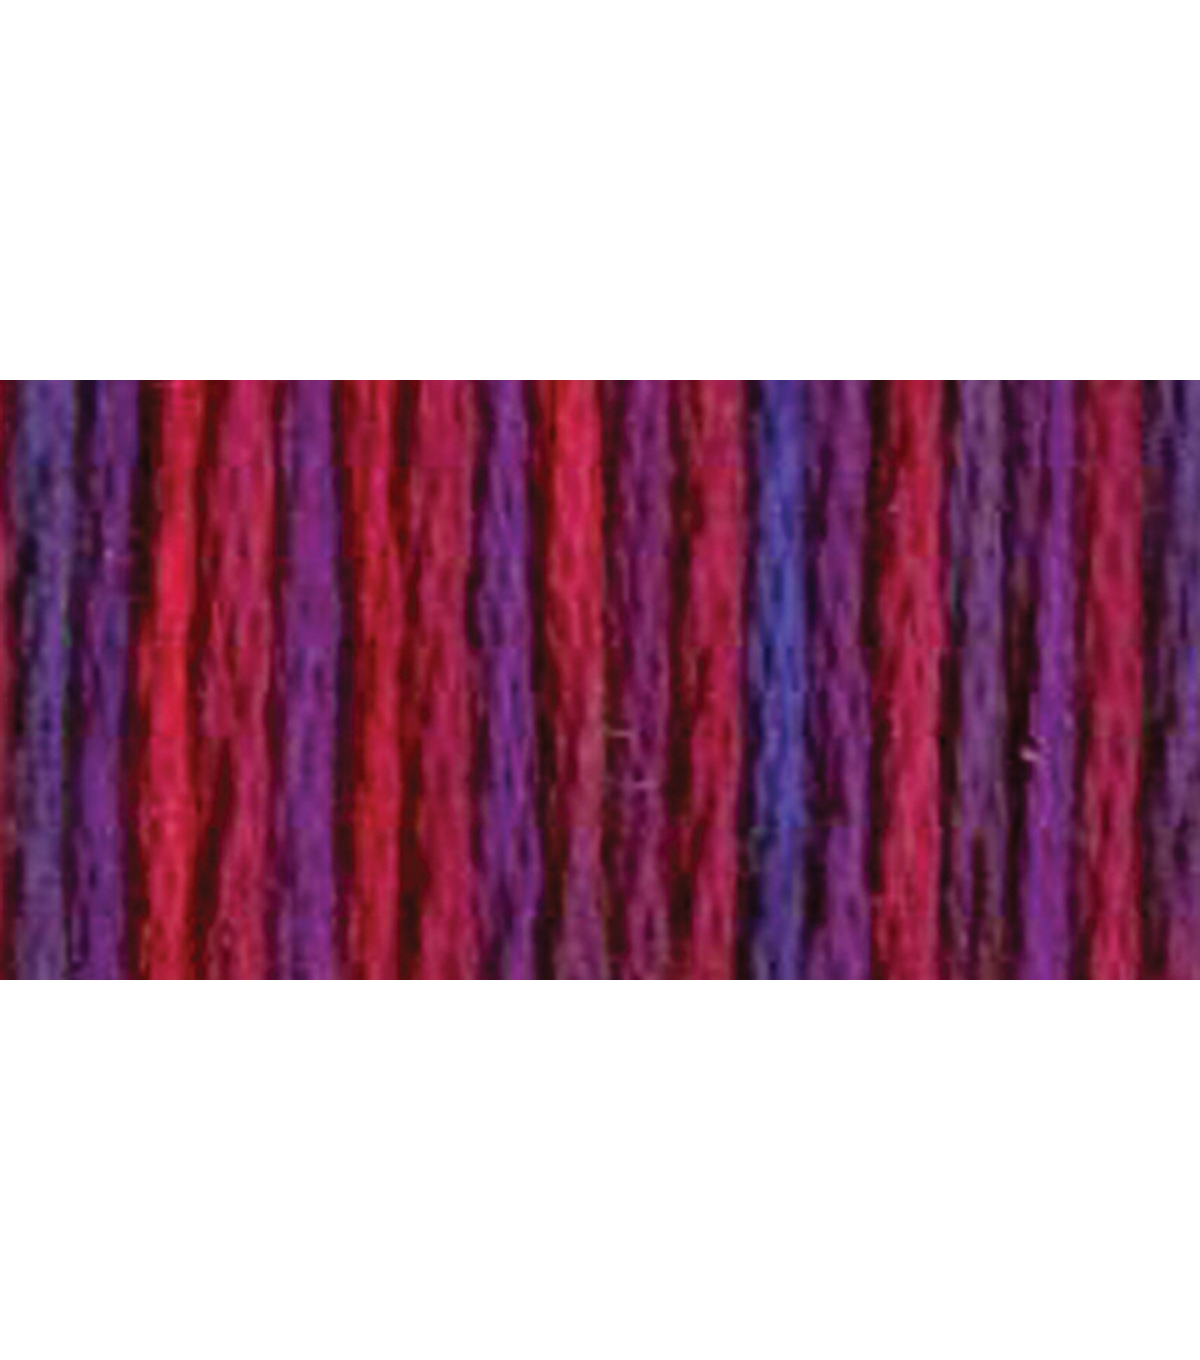 DMC Pearl Cotton Variation Thread 27 Yds Size 5, Mixed Berries